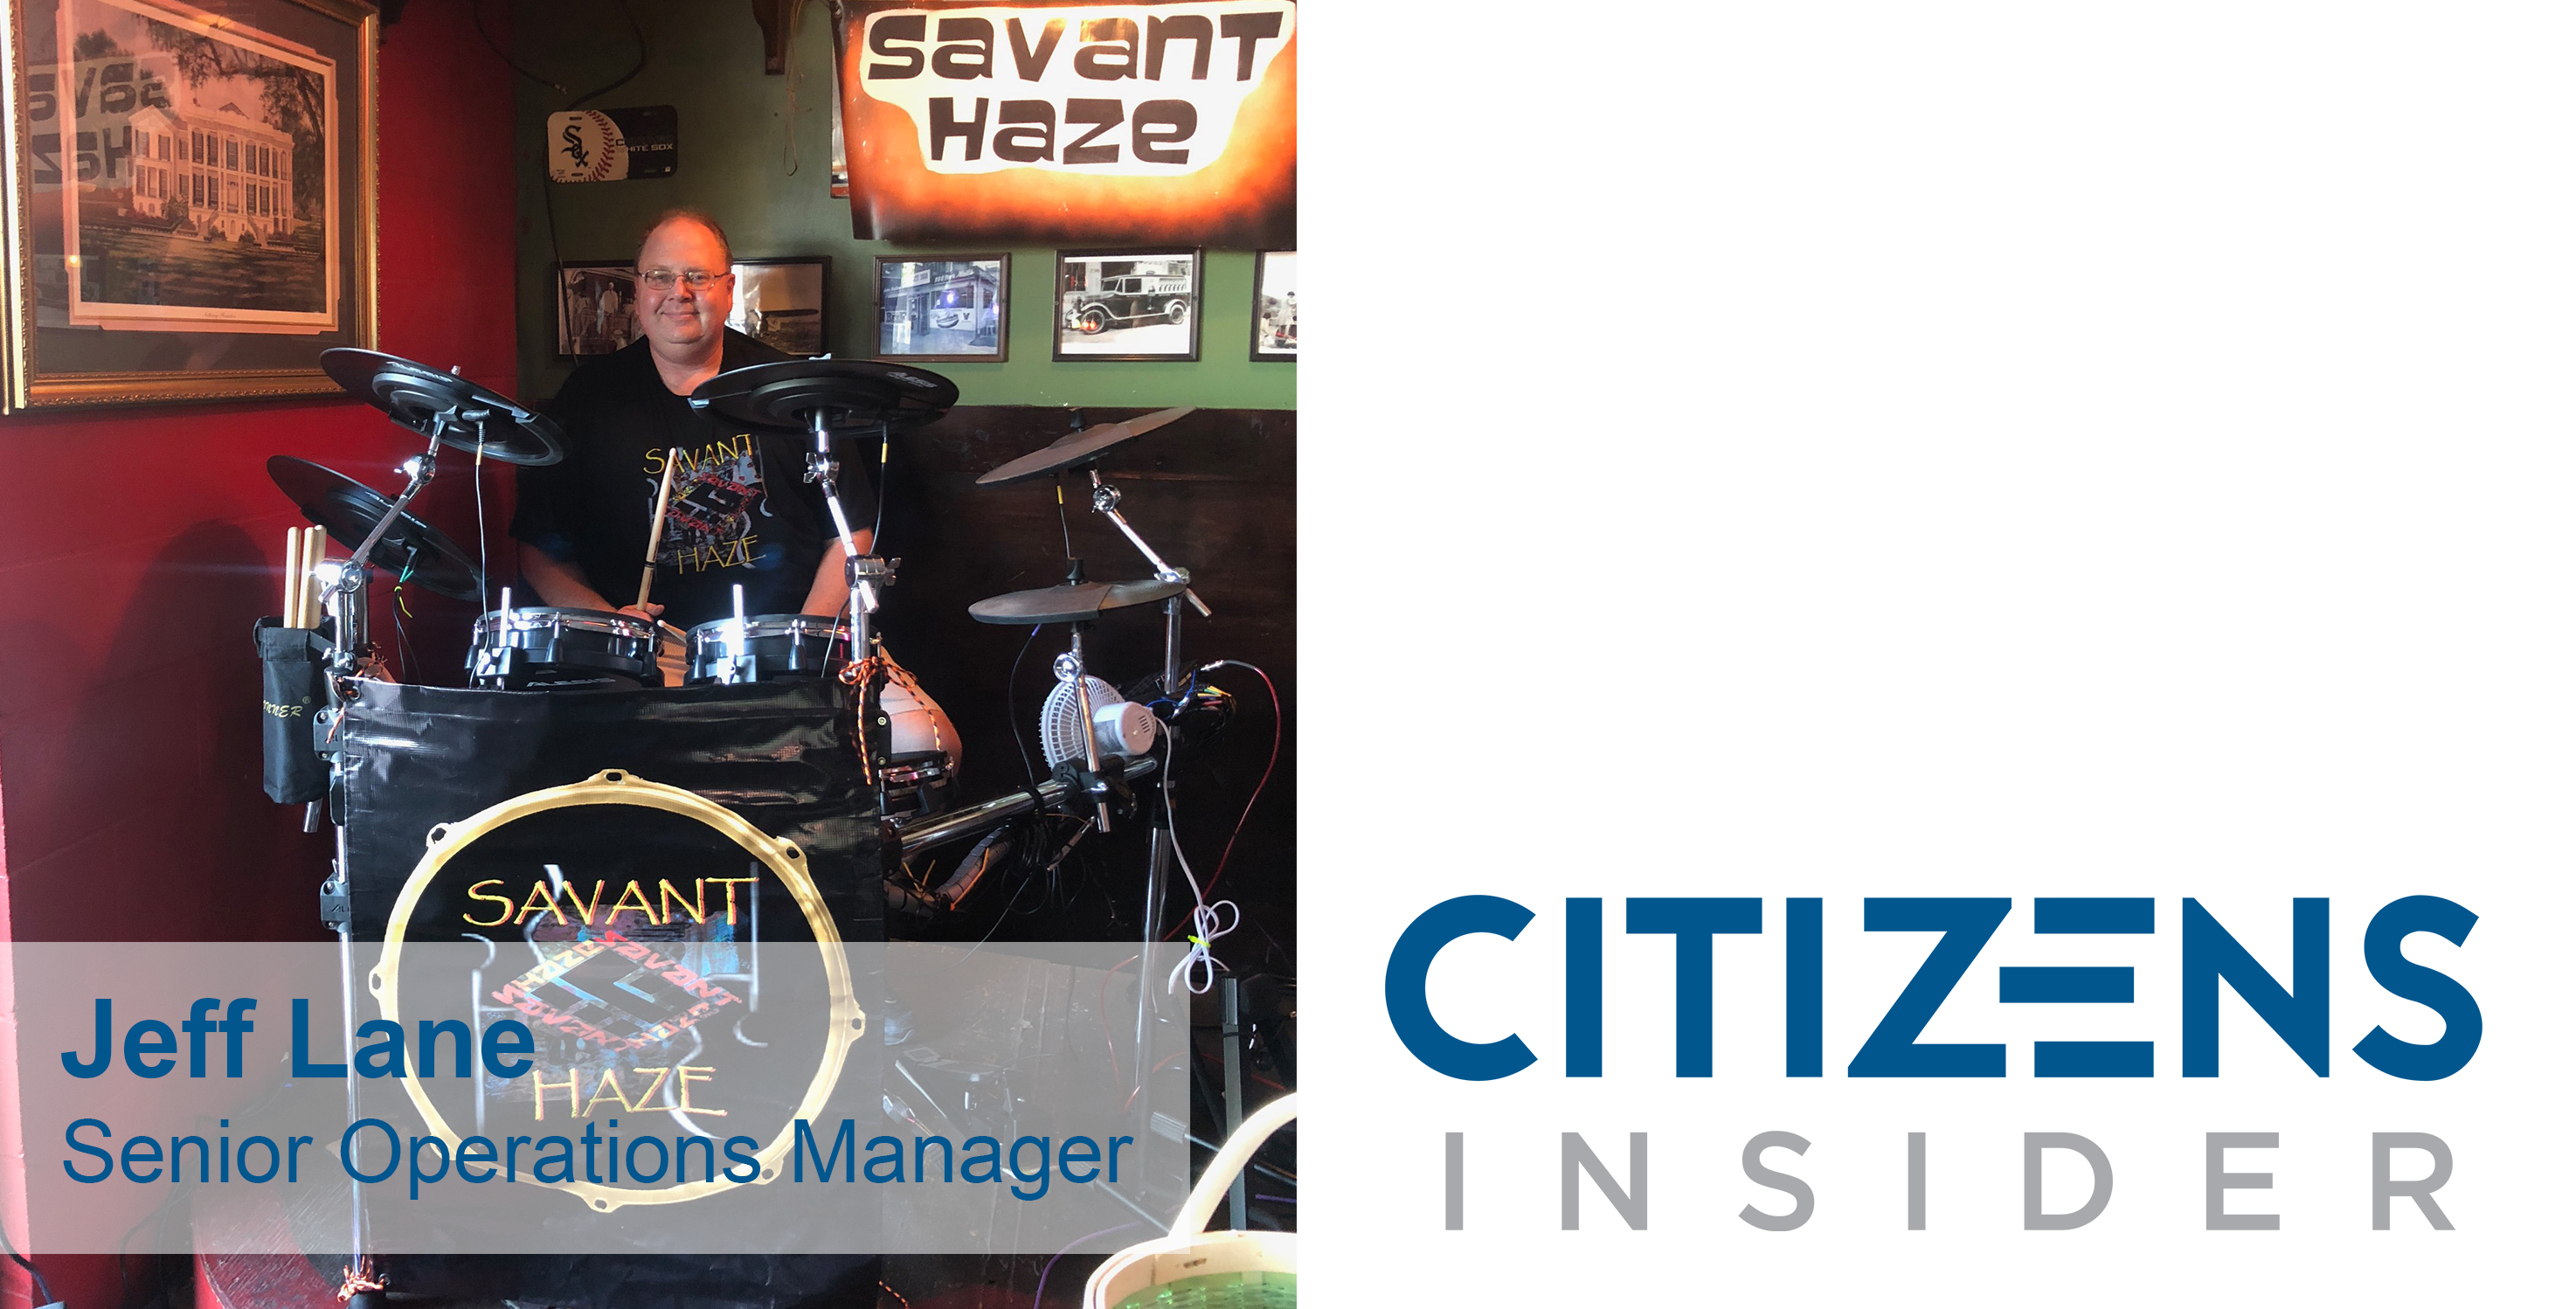 Citizens Insider: Jeff Lane